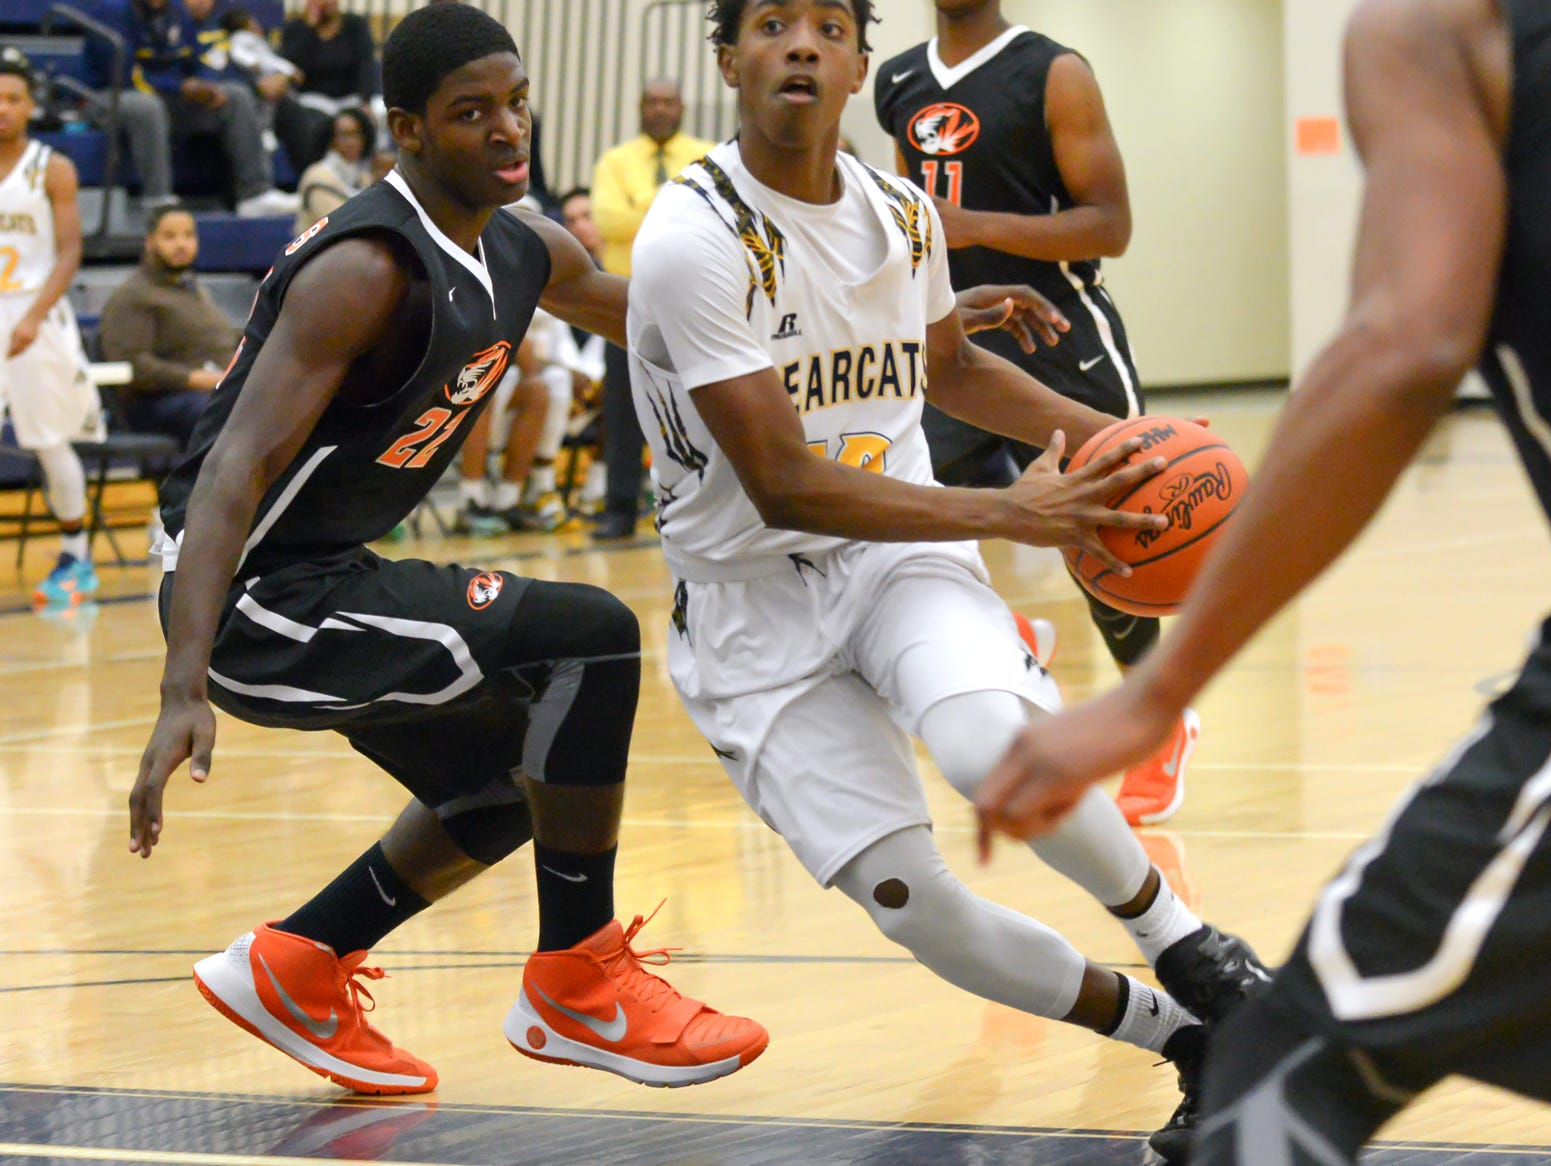 Central's Jahmiel Wade drives the basket Tuesday night.